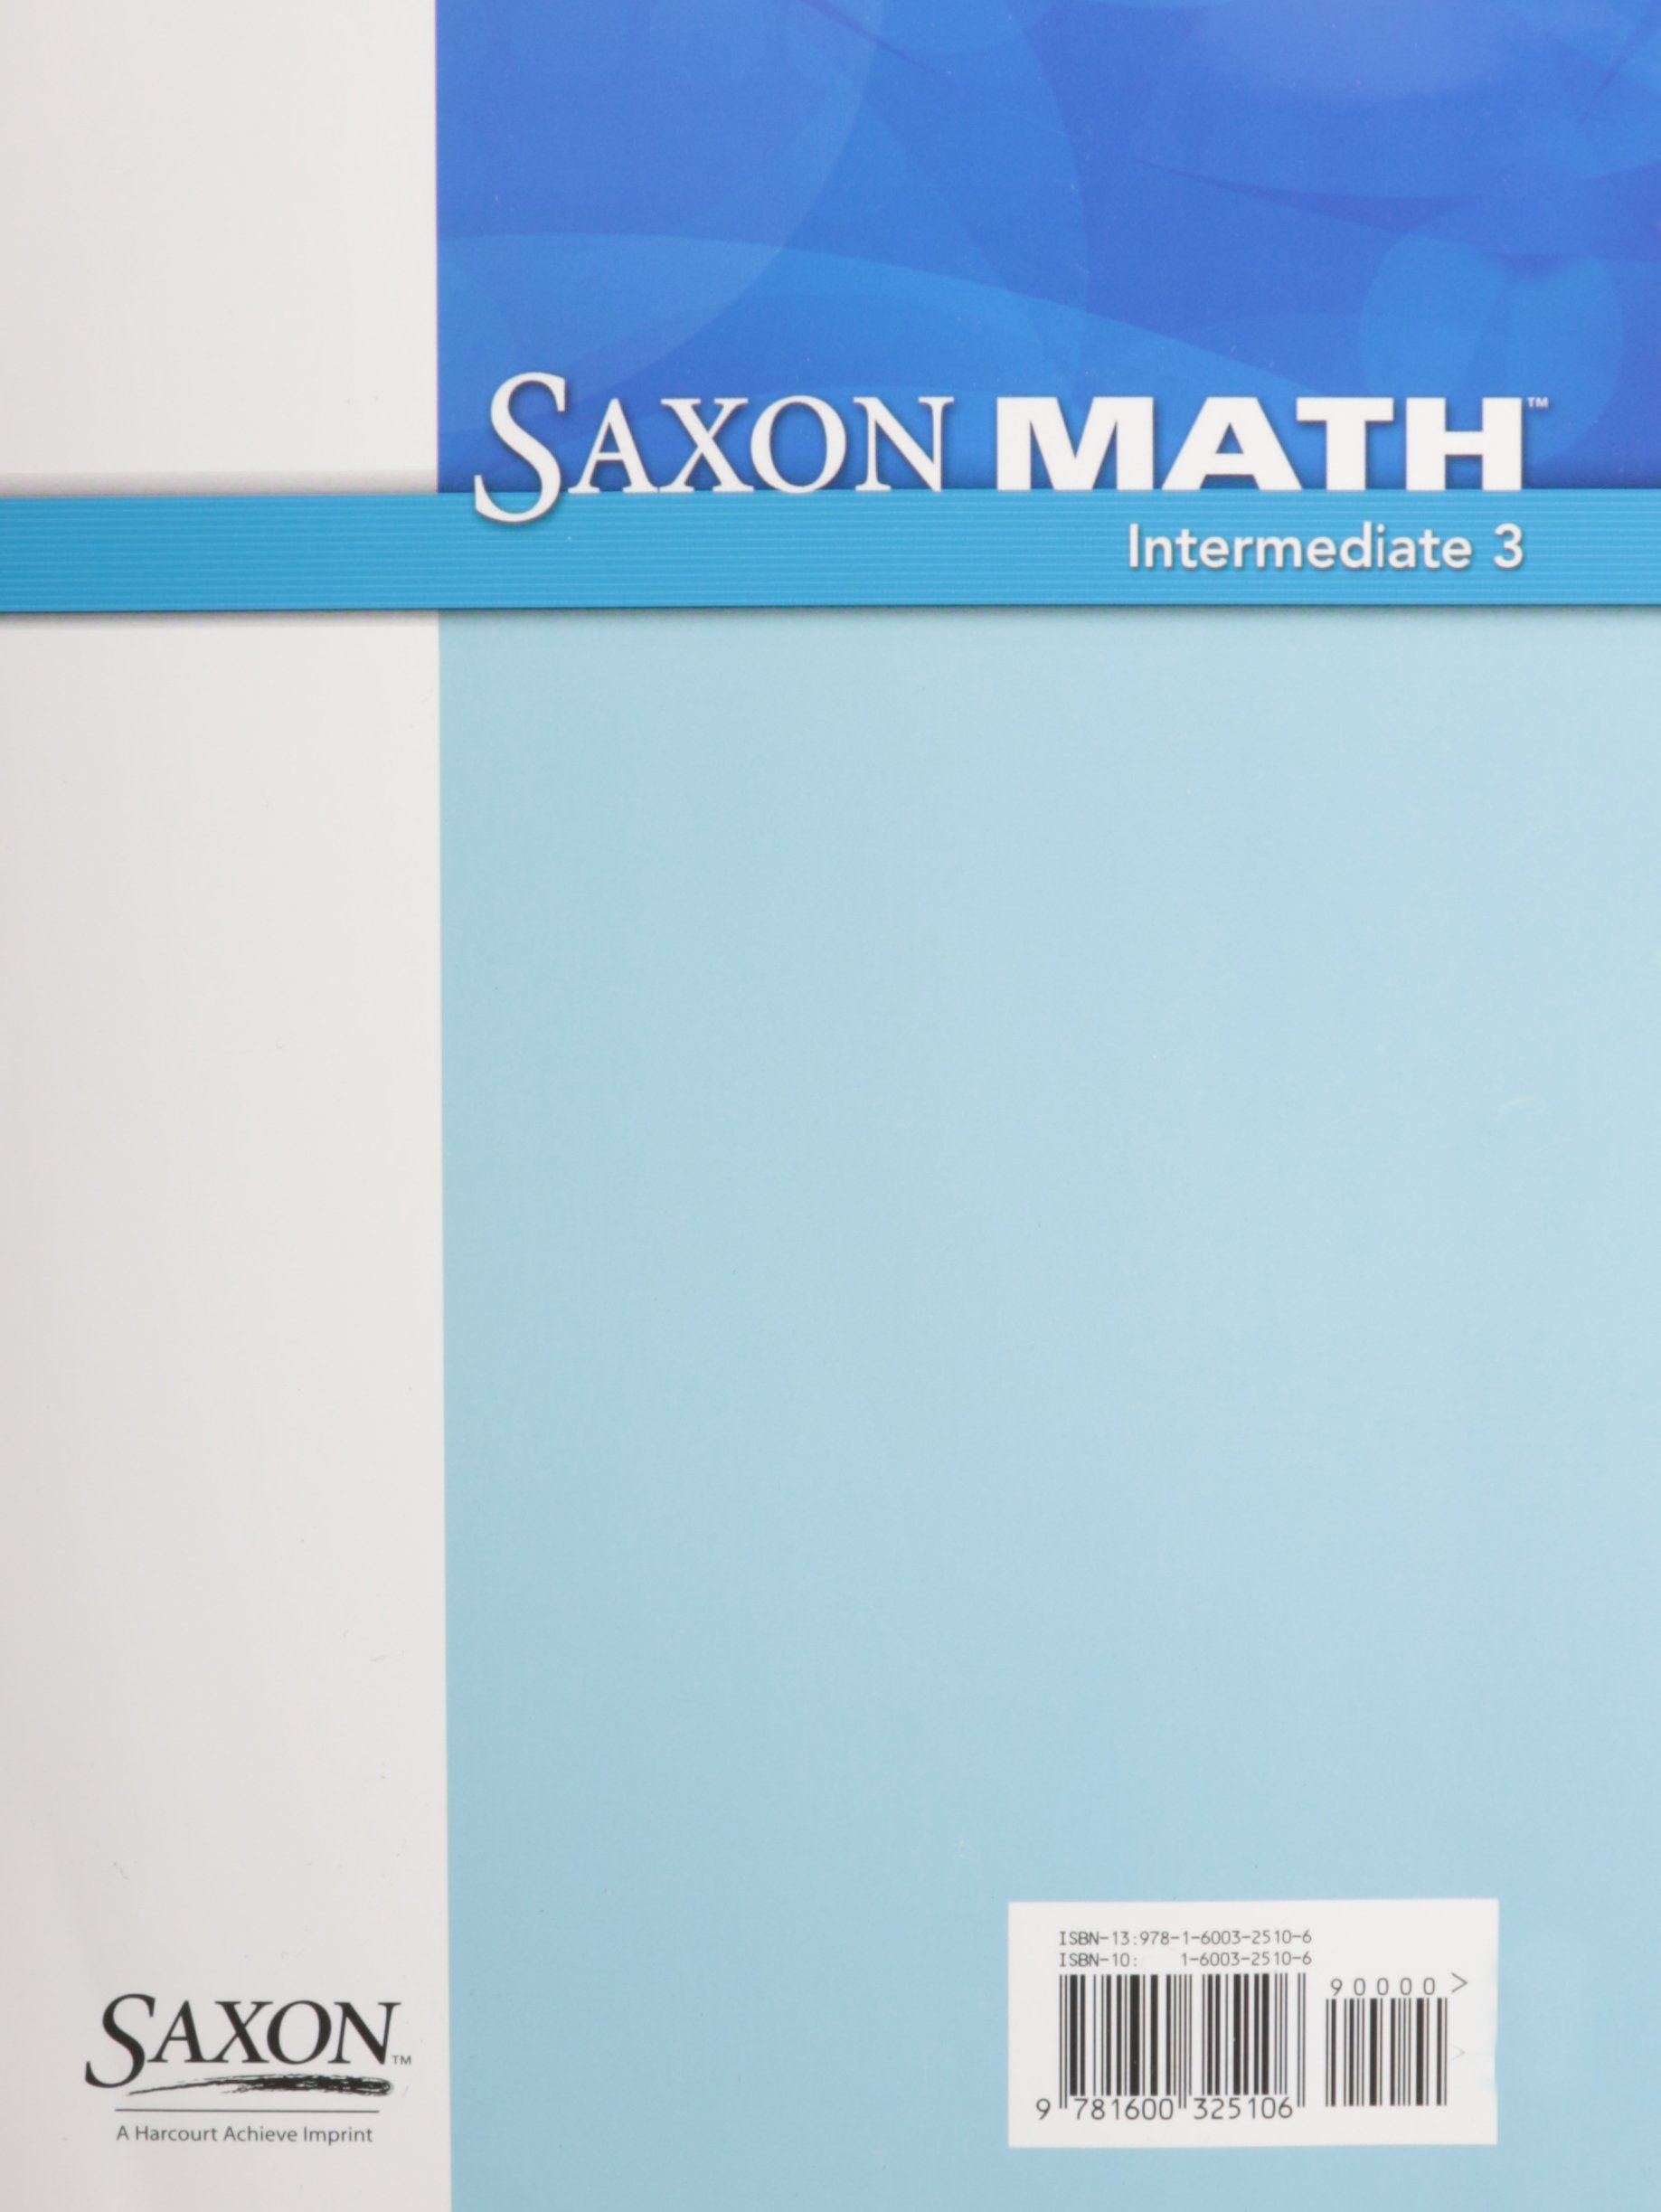 Buy Saxon Math Intermediate 3: Power-Up Workbook Book Online at Low ...